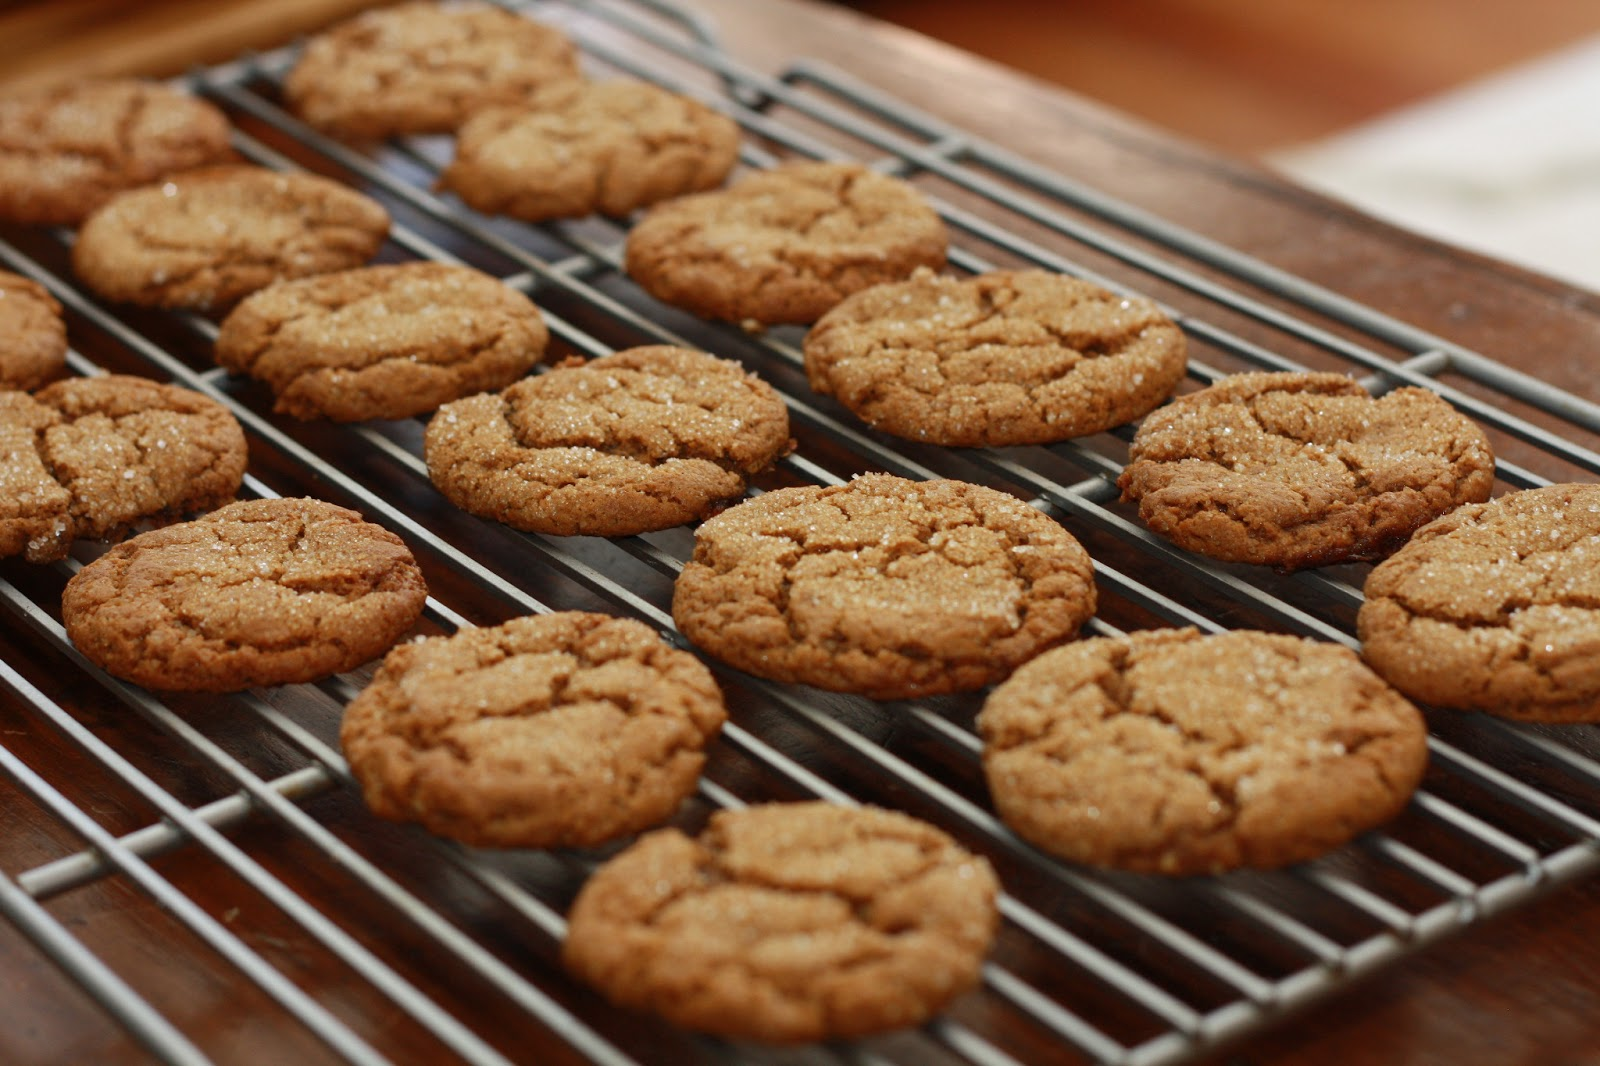 For the recipe : Chloe's Vegan Ginger Molasses Cookies